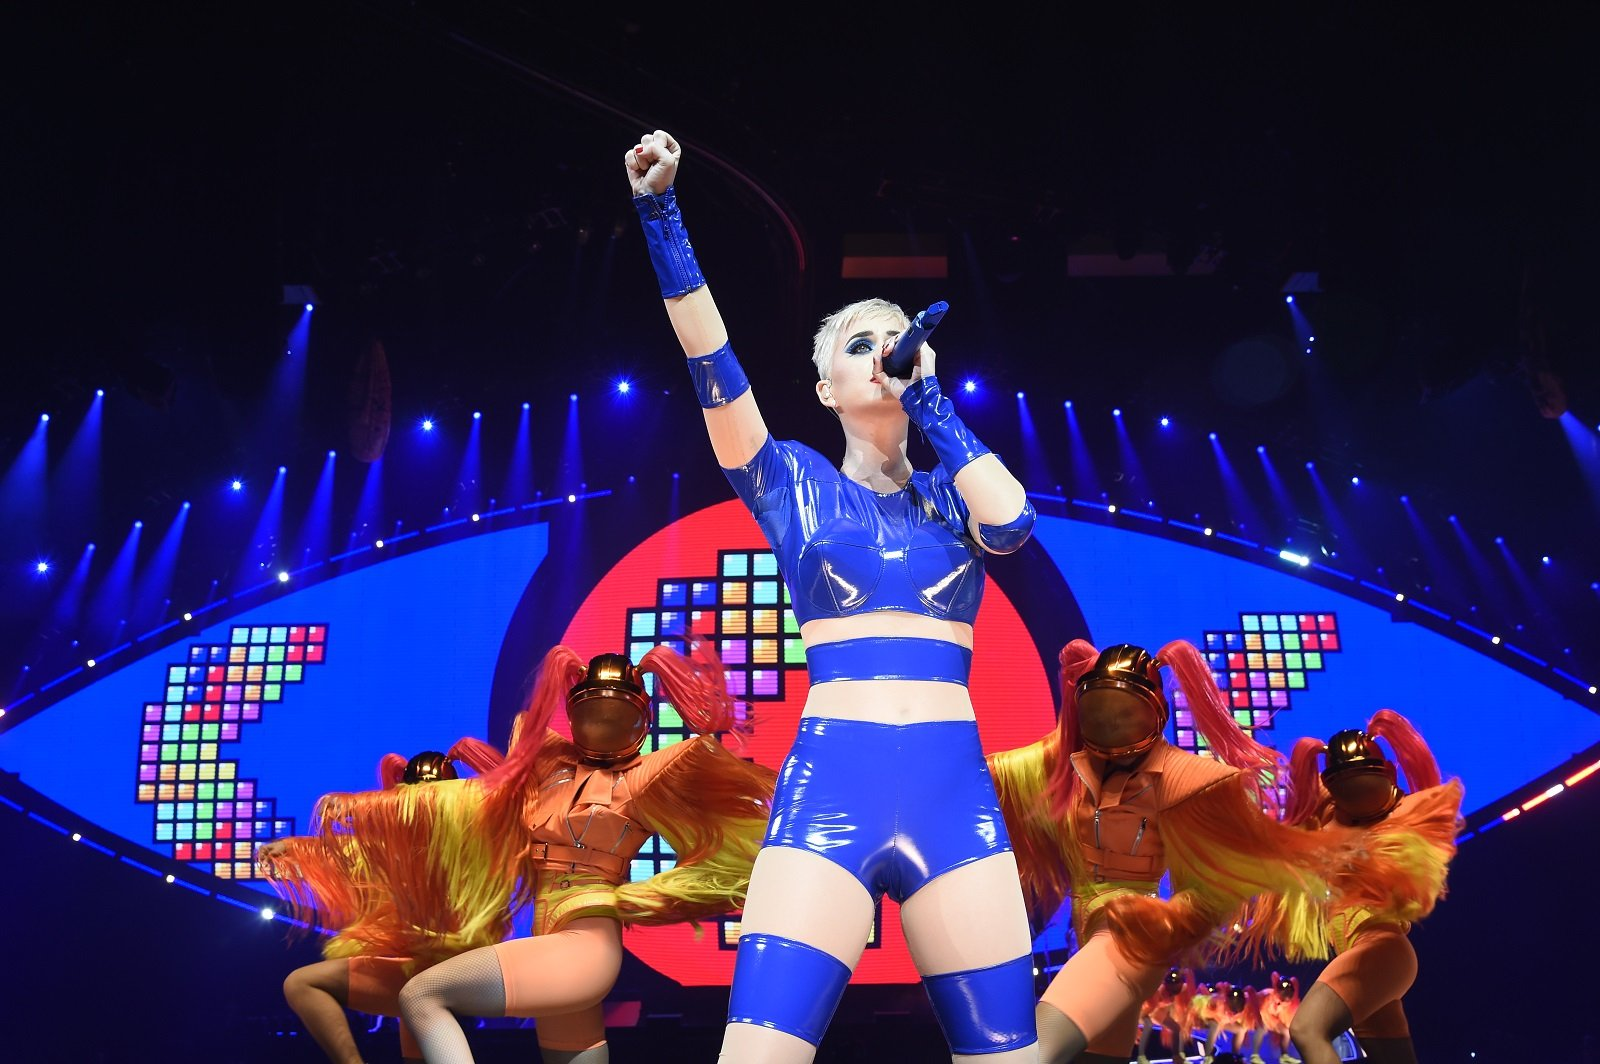 Tetris Featured in Katy Perry's Latest Tour